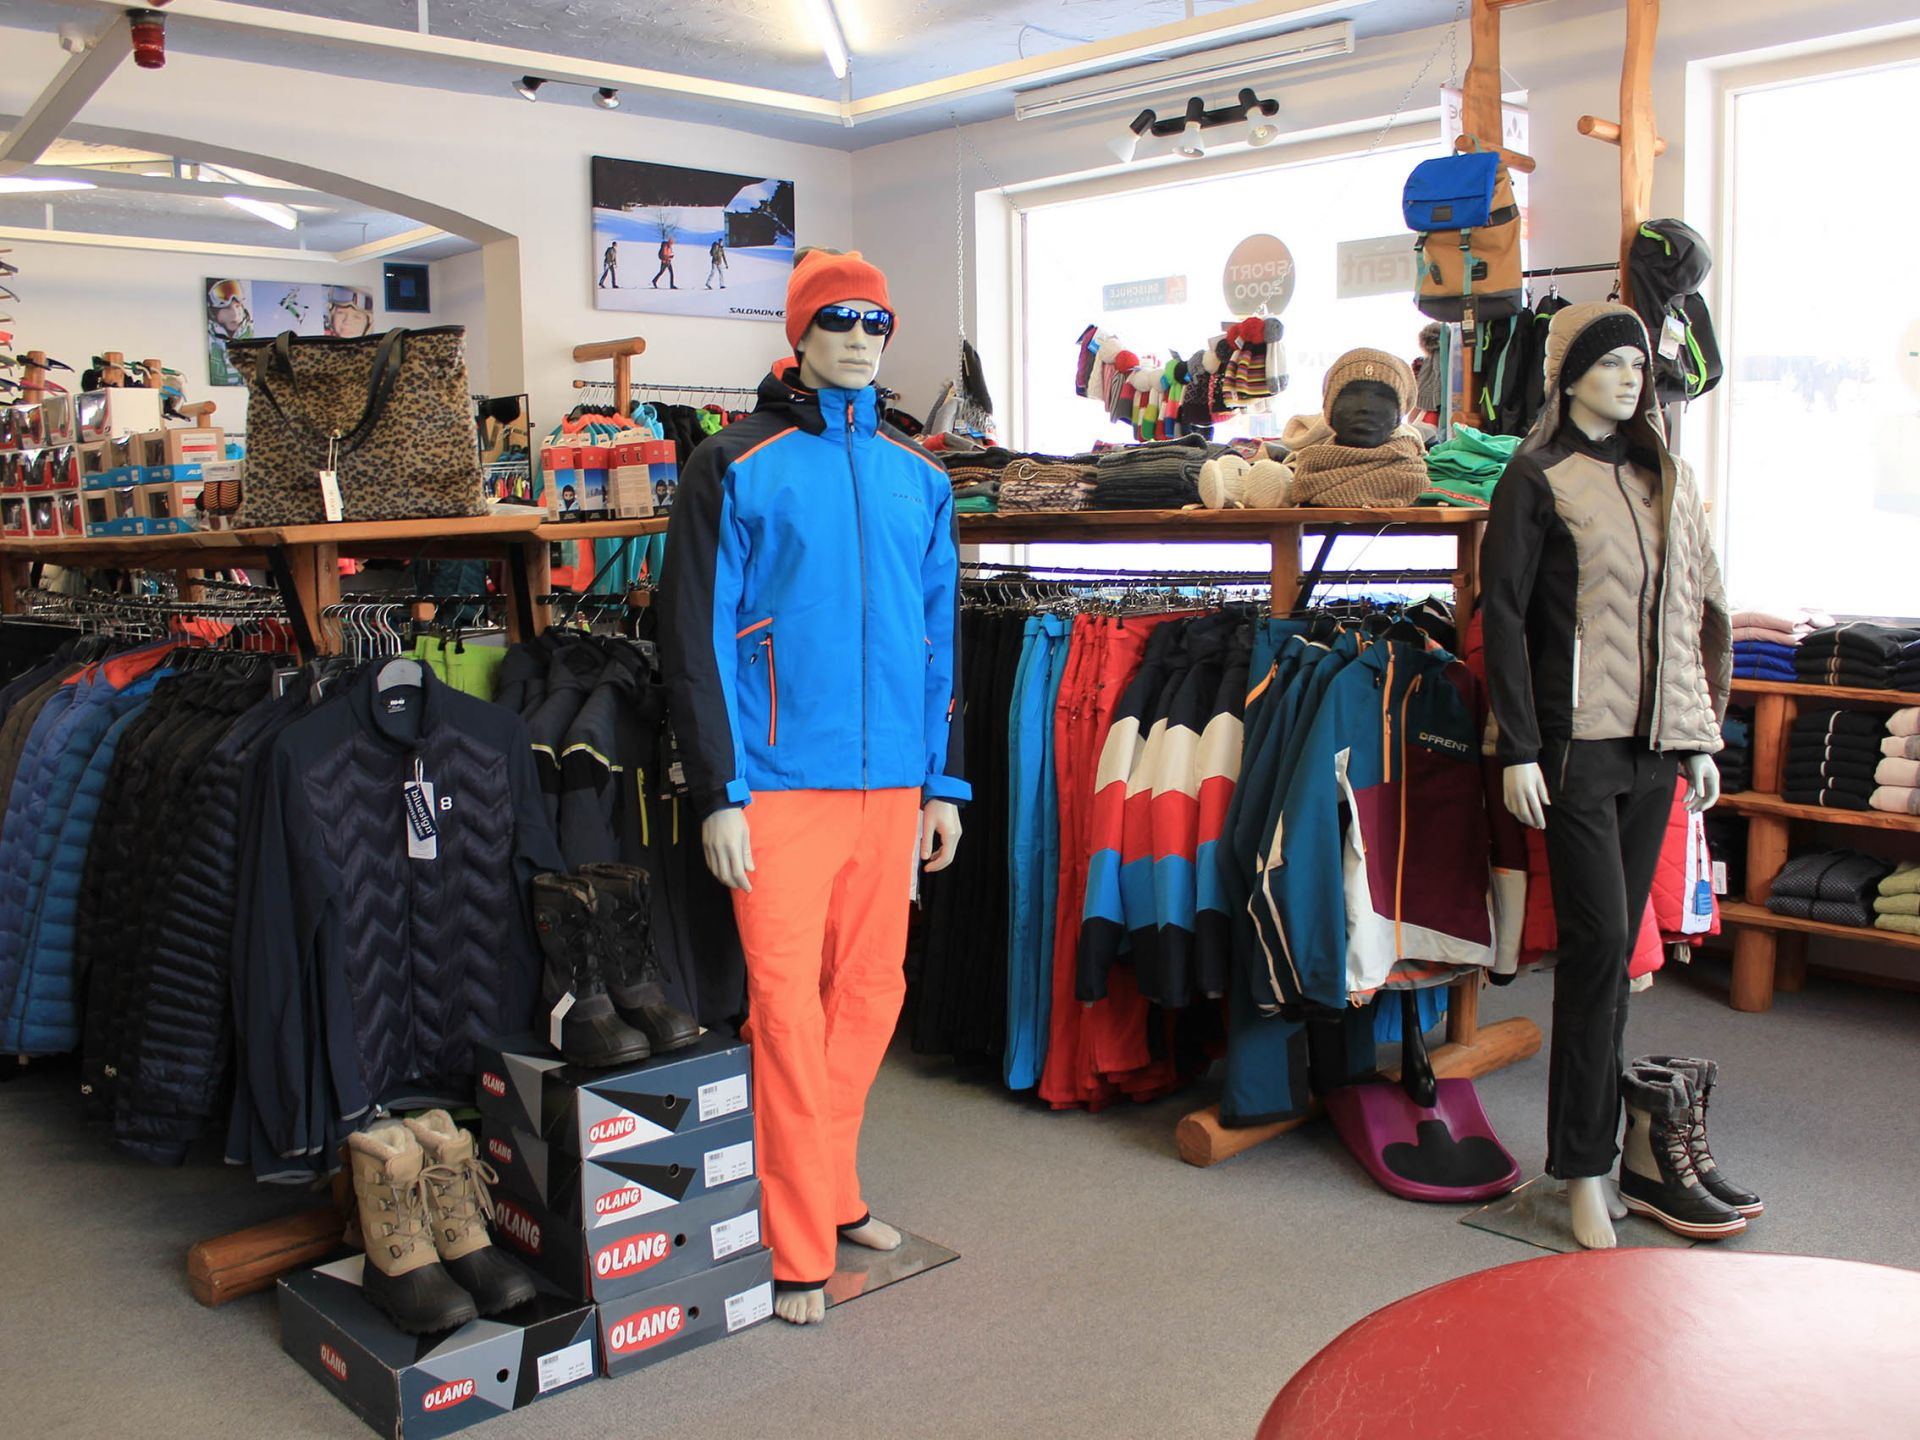 Ski clothing, winter shoes, cross-country ski clothing, hiking clothes, swimwear and more